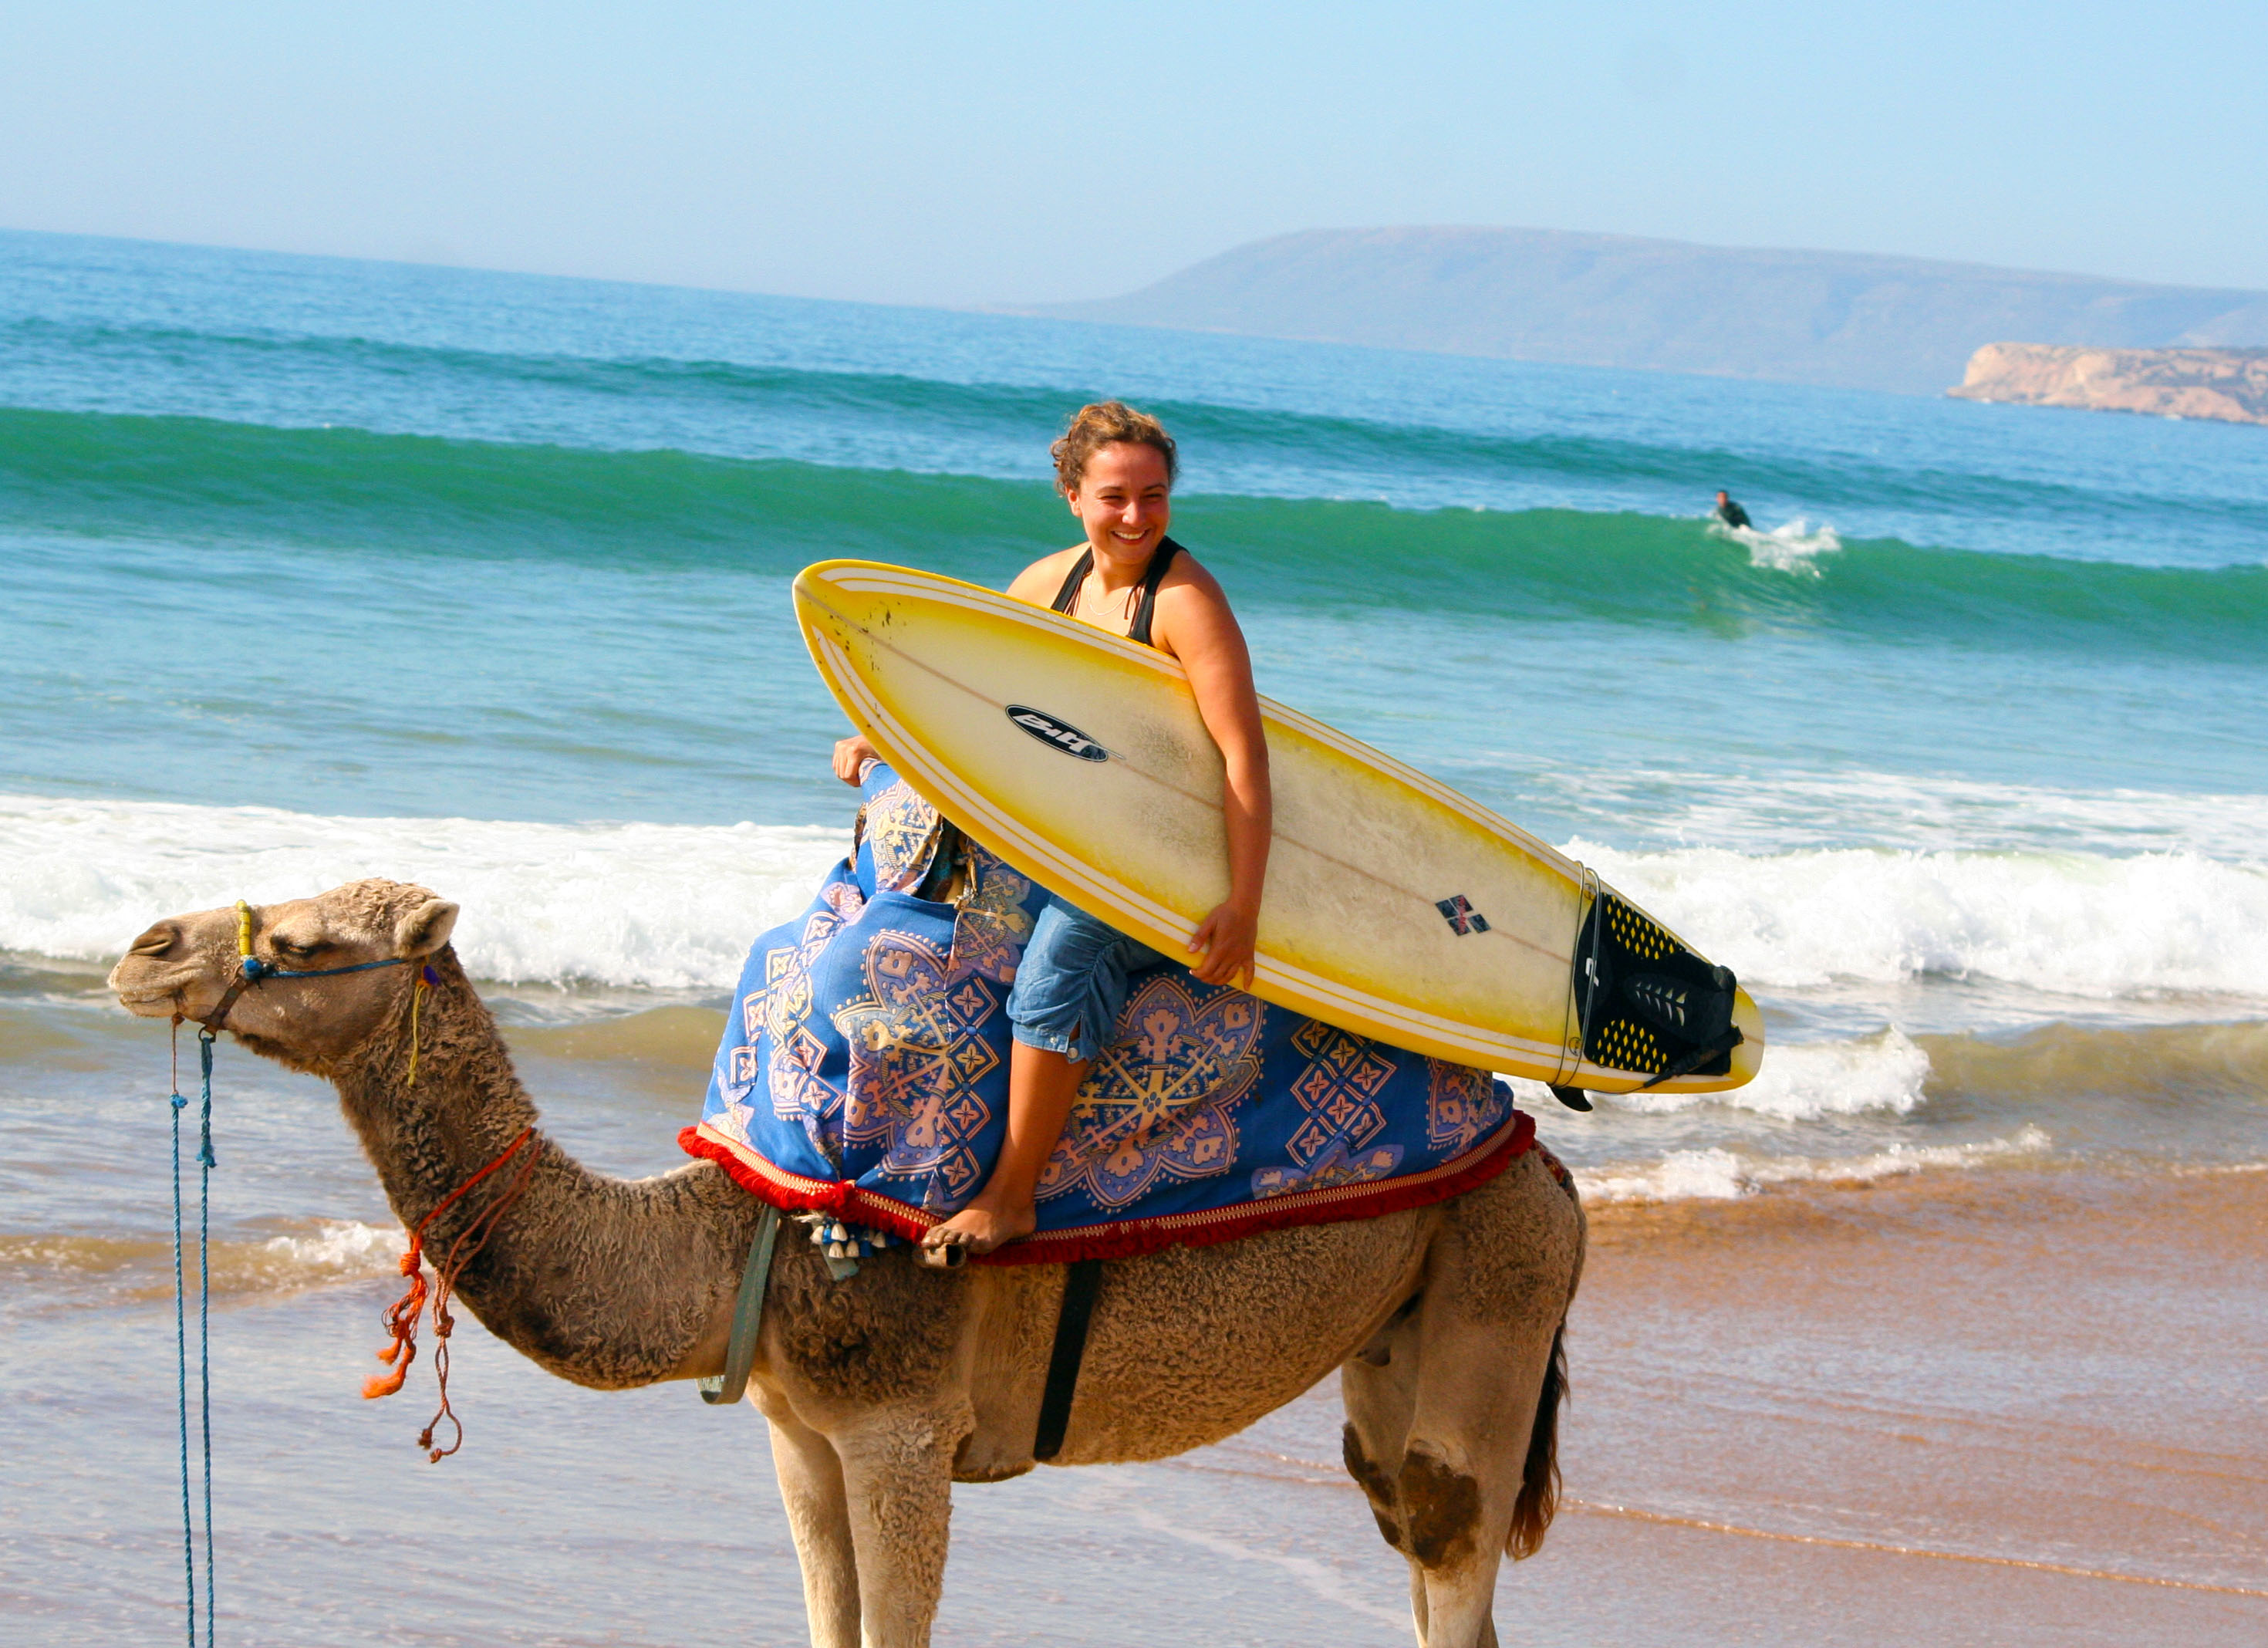 camel-ride-and-surfing-morocco_0_1